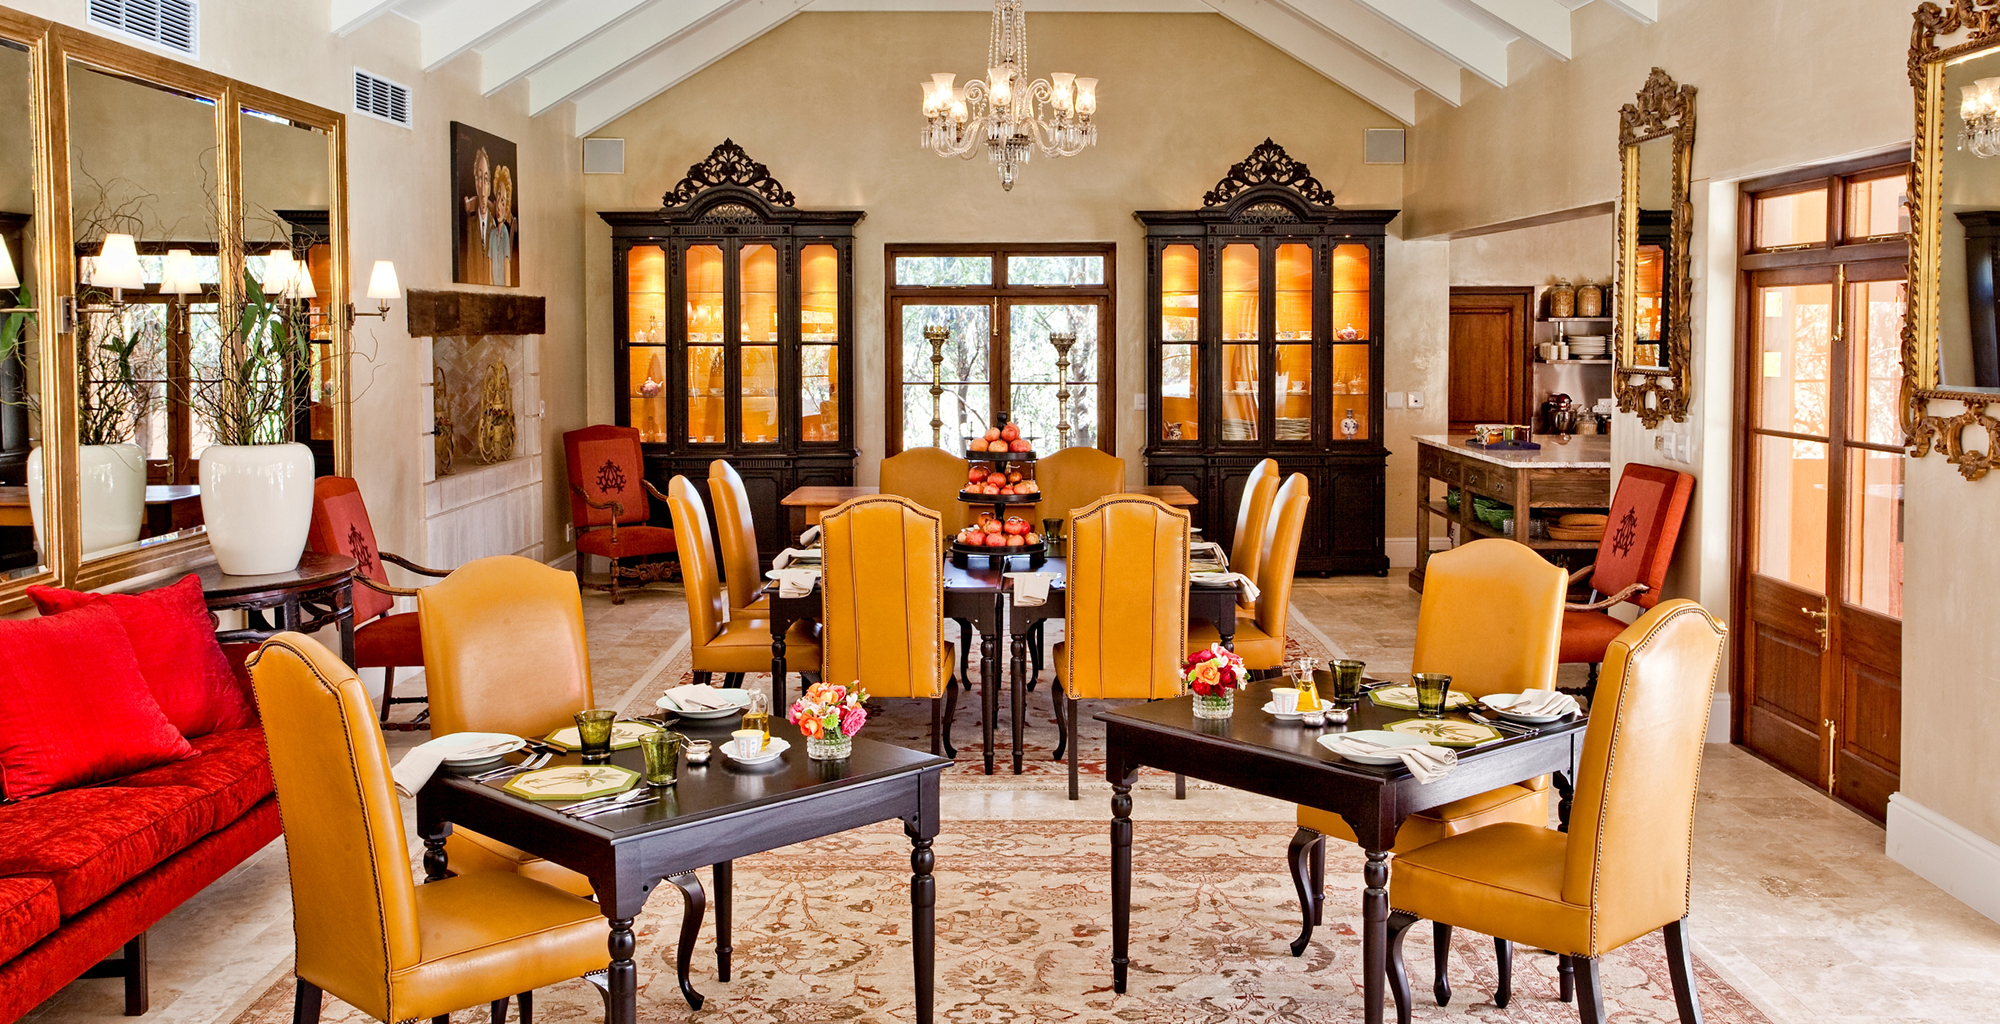 South-Africa-La-Residence-Dining